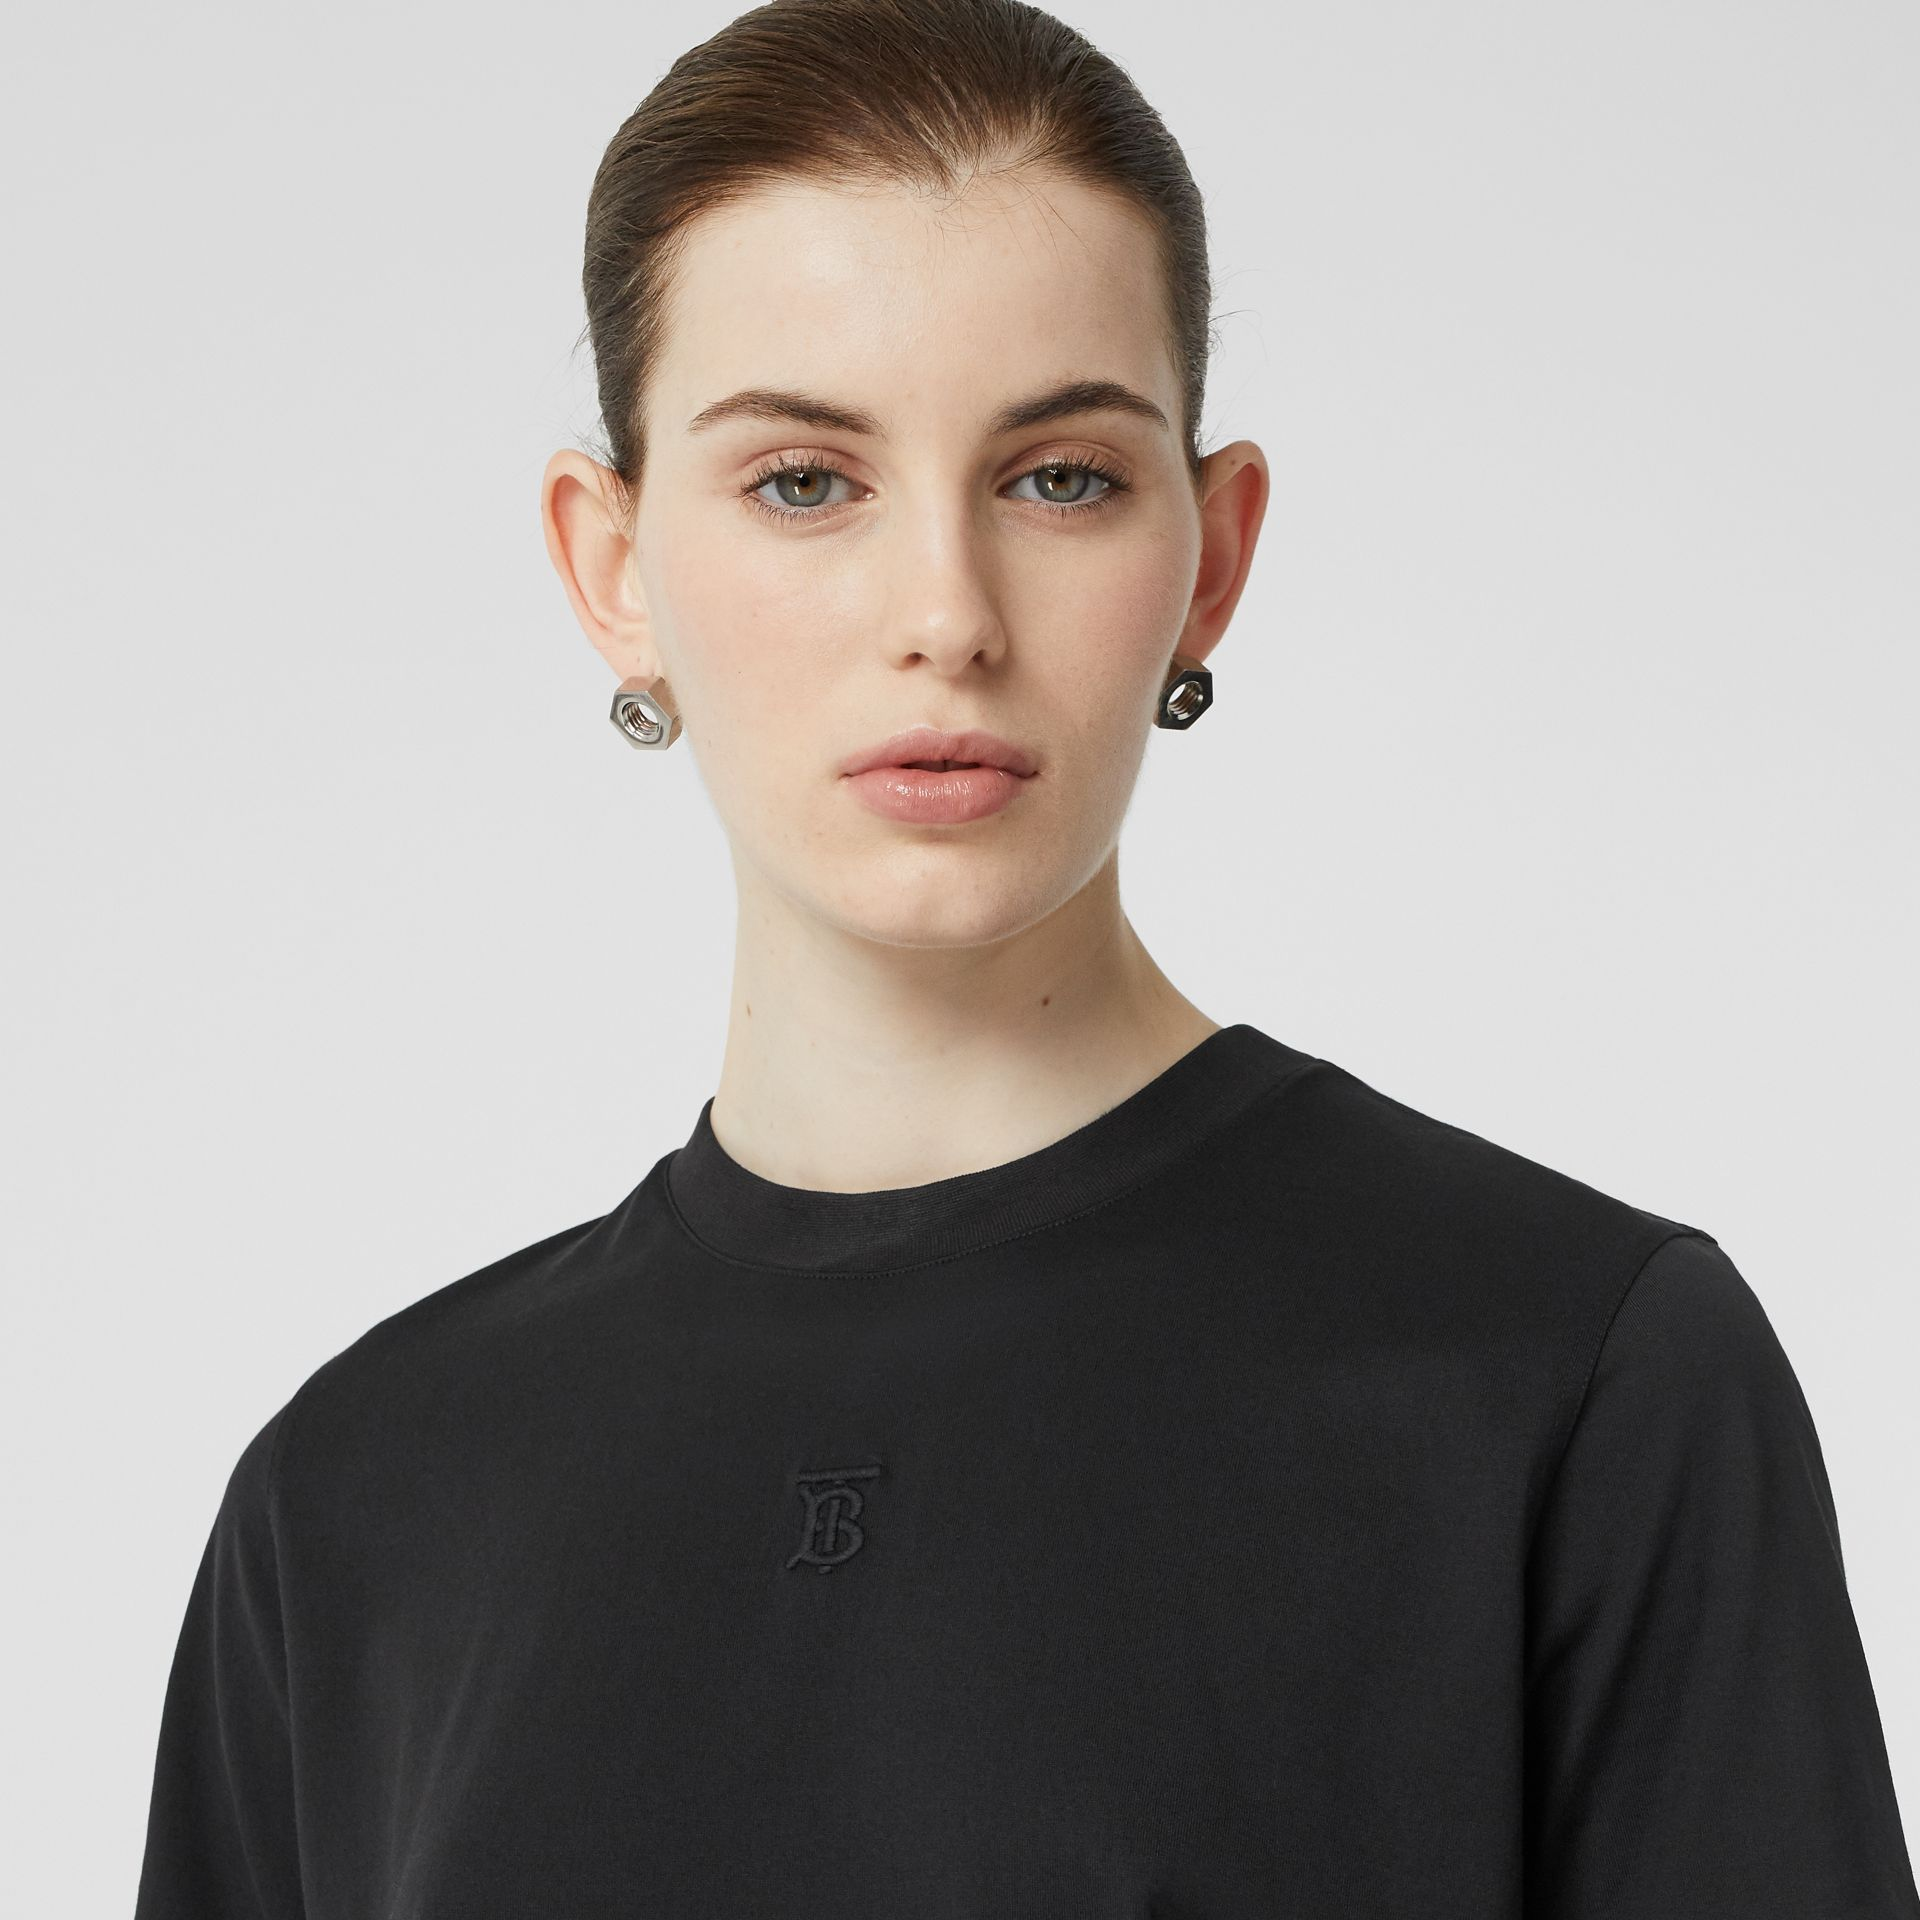 Monogram Motif Cotton T-shirt in Black - Women | Burberry - gallery image 1